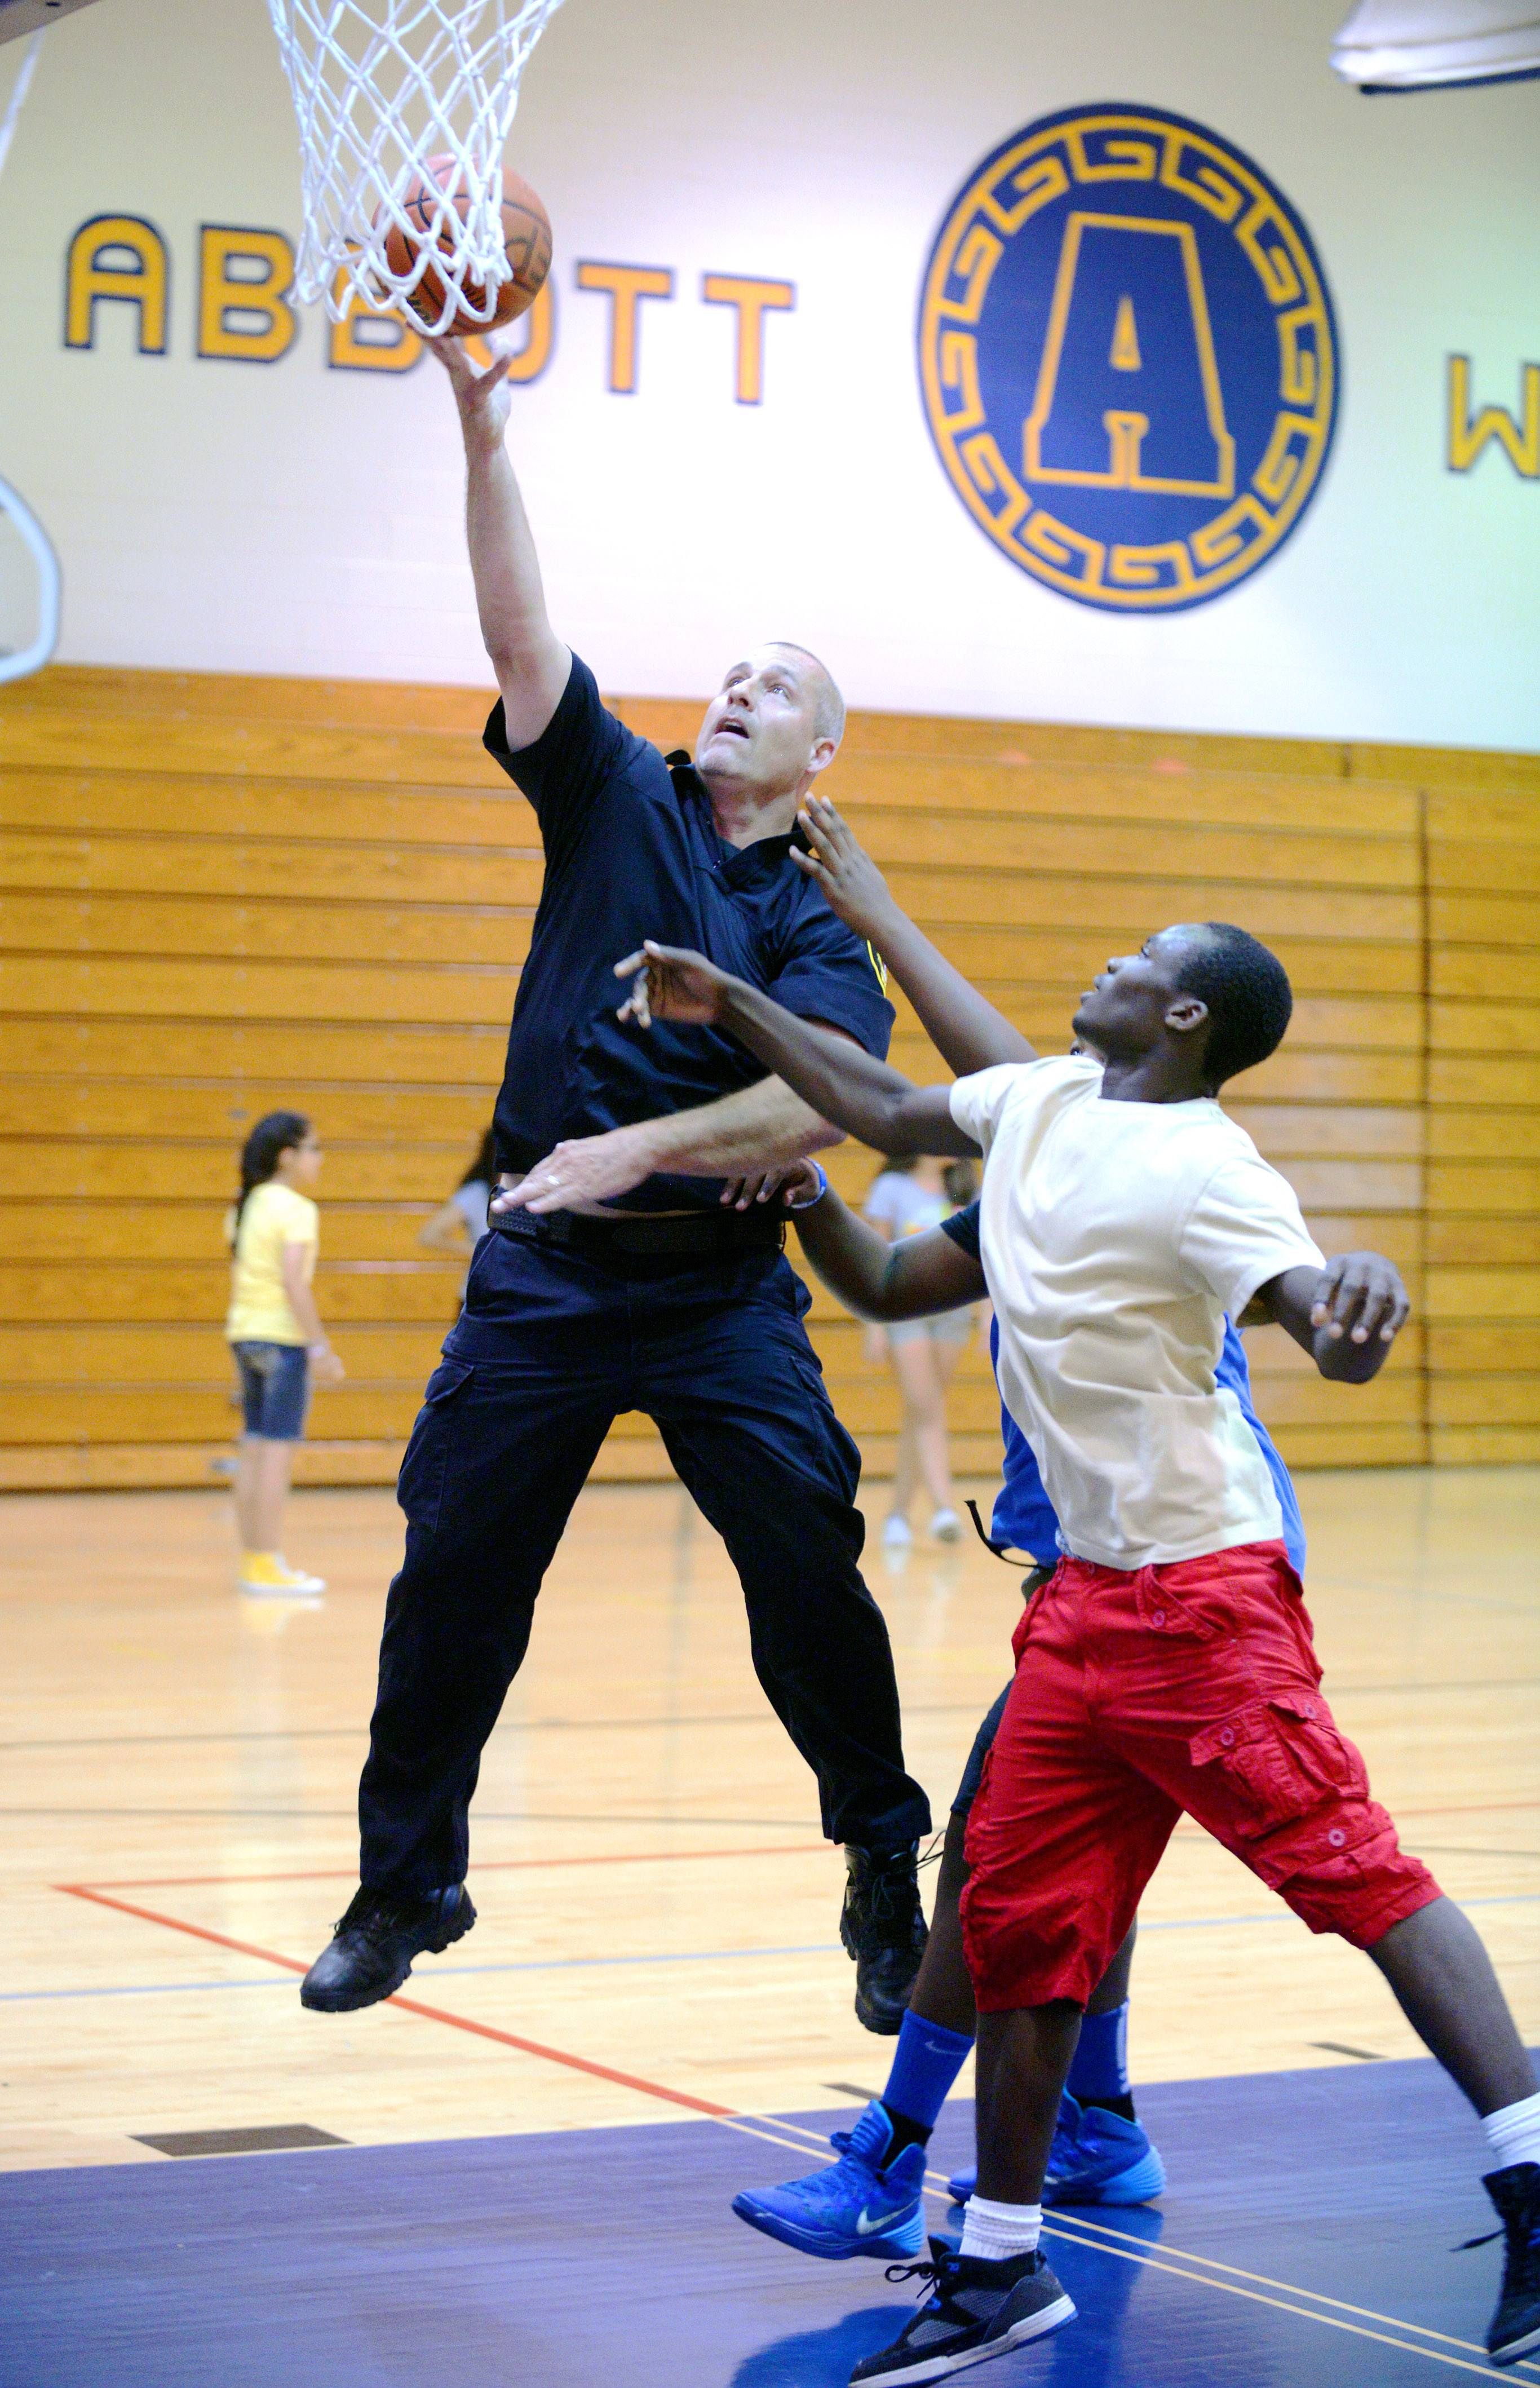 Elgin police officer Mike Kata plays basketball with Aris Johnson, 14 (obscured), and Darius Hill, 15, on Tuesday night during the Elgin Police Department's Kids United program at Abbott Middle School. This is the first year Darius and Aris have been in the program. Kata, who has been with the police department for 11 years, will be the new school resource officer at Abbott Middle School this fall.